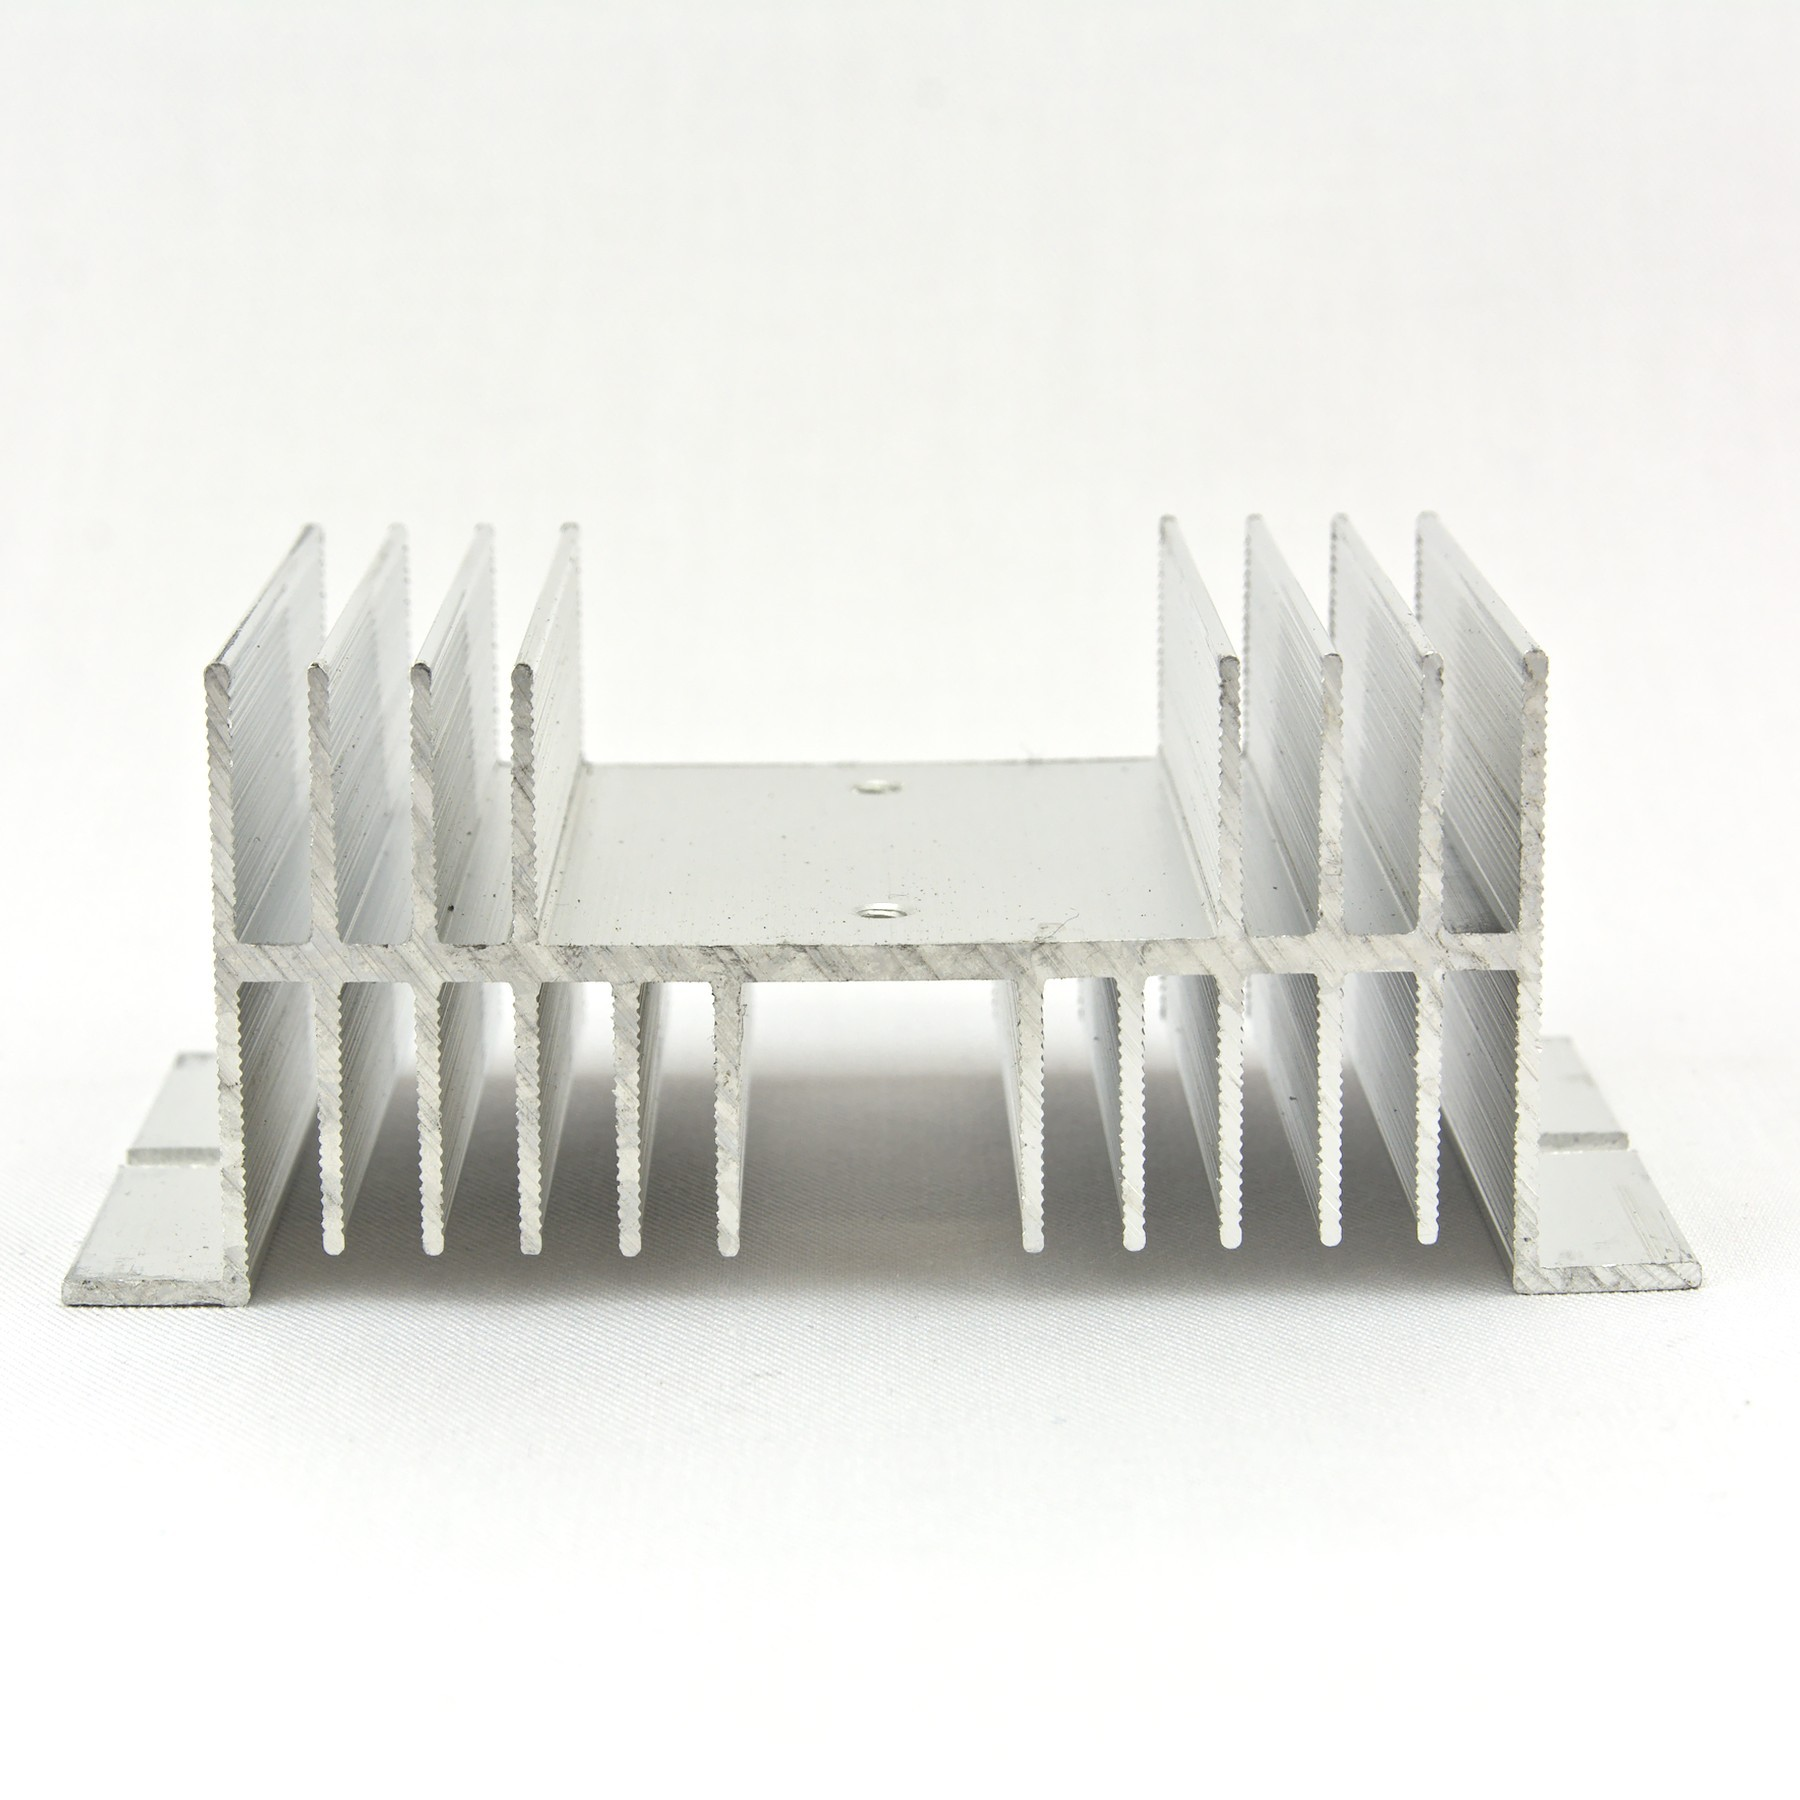 Low profile SSR heat sink